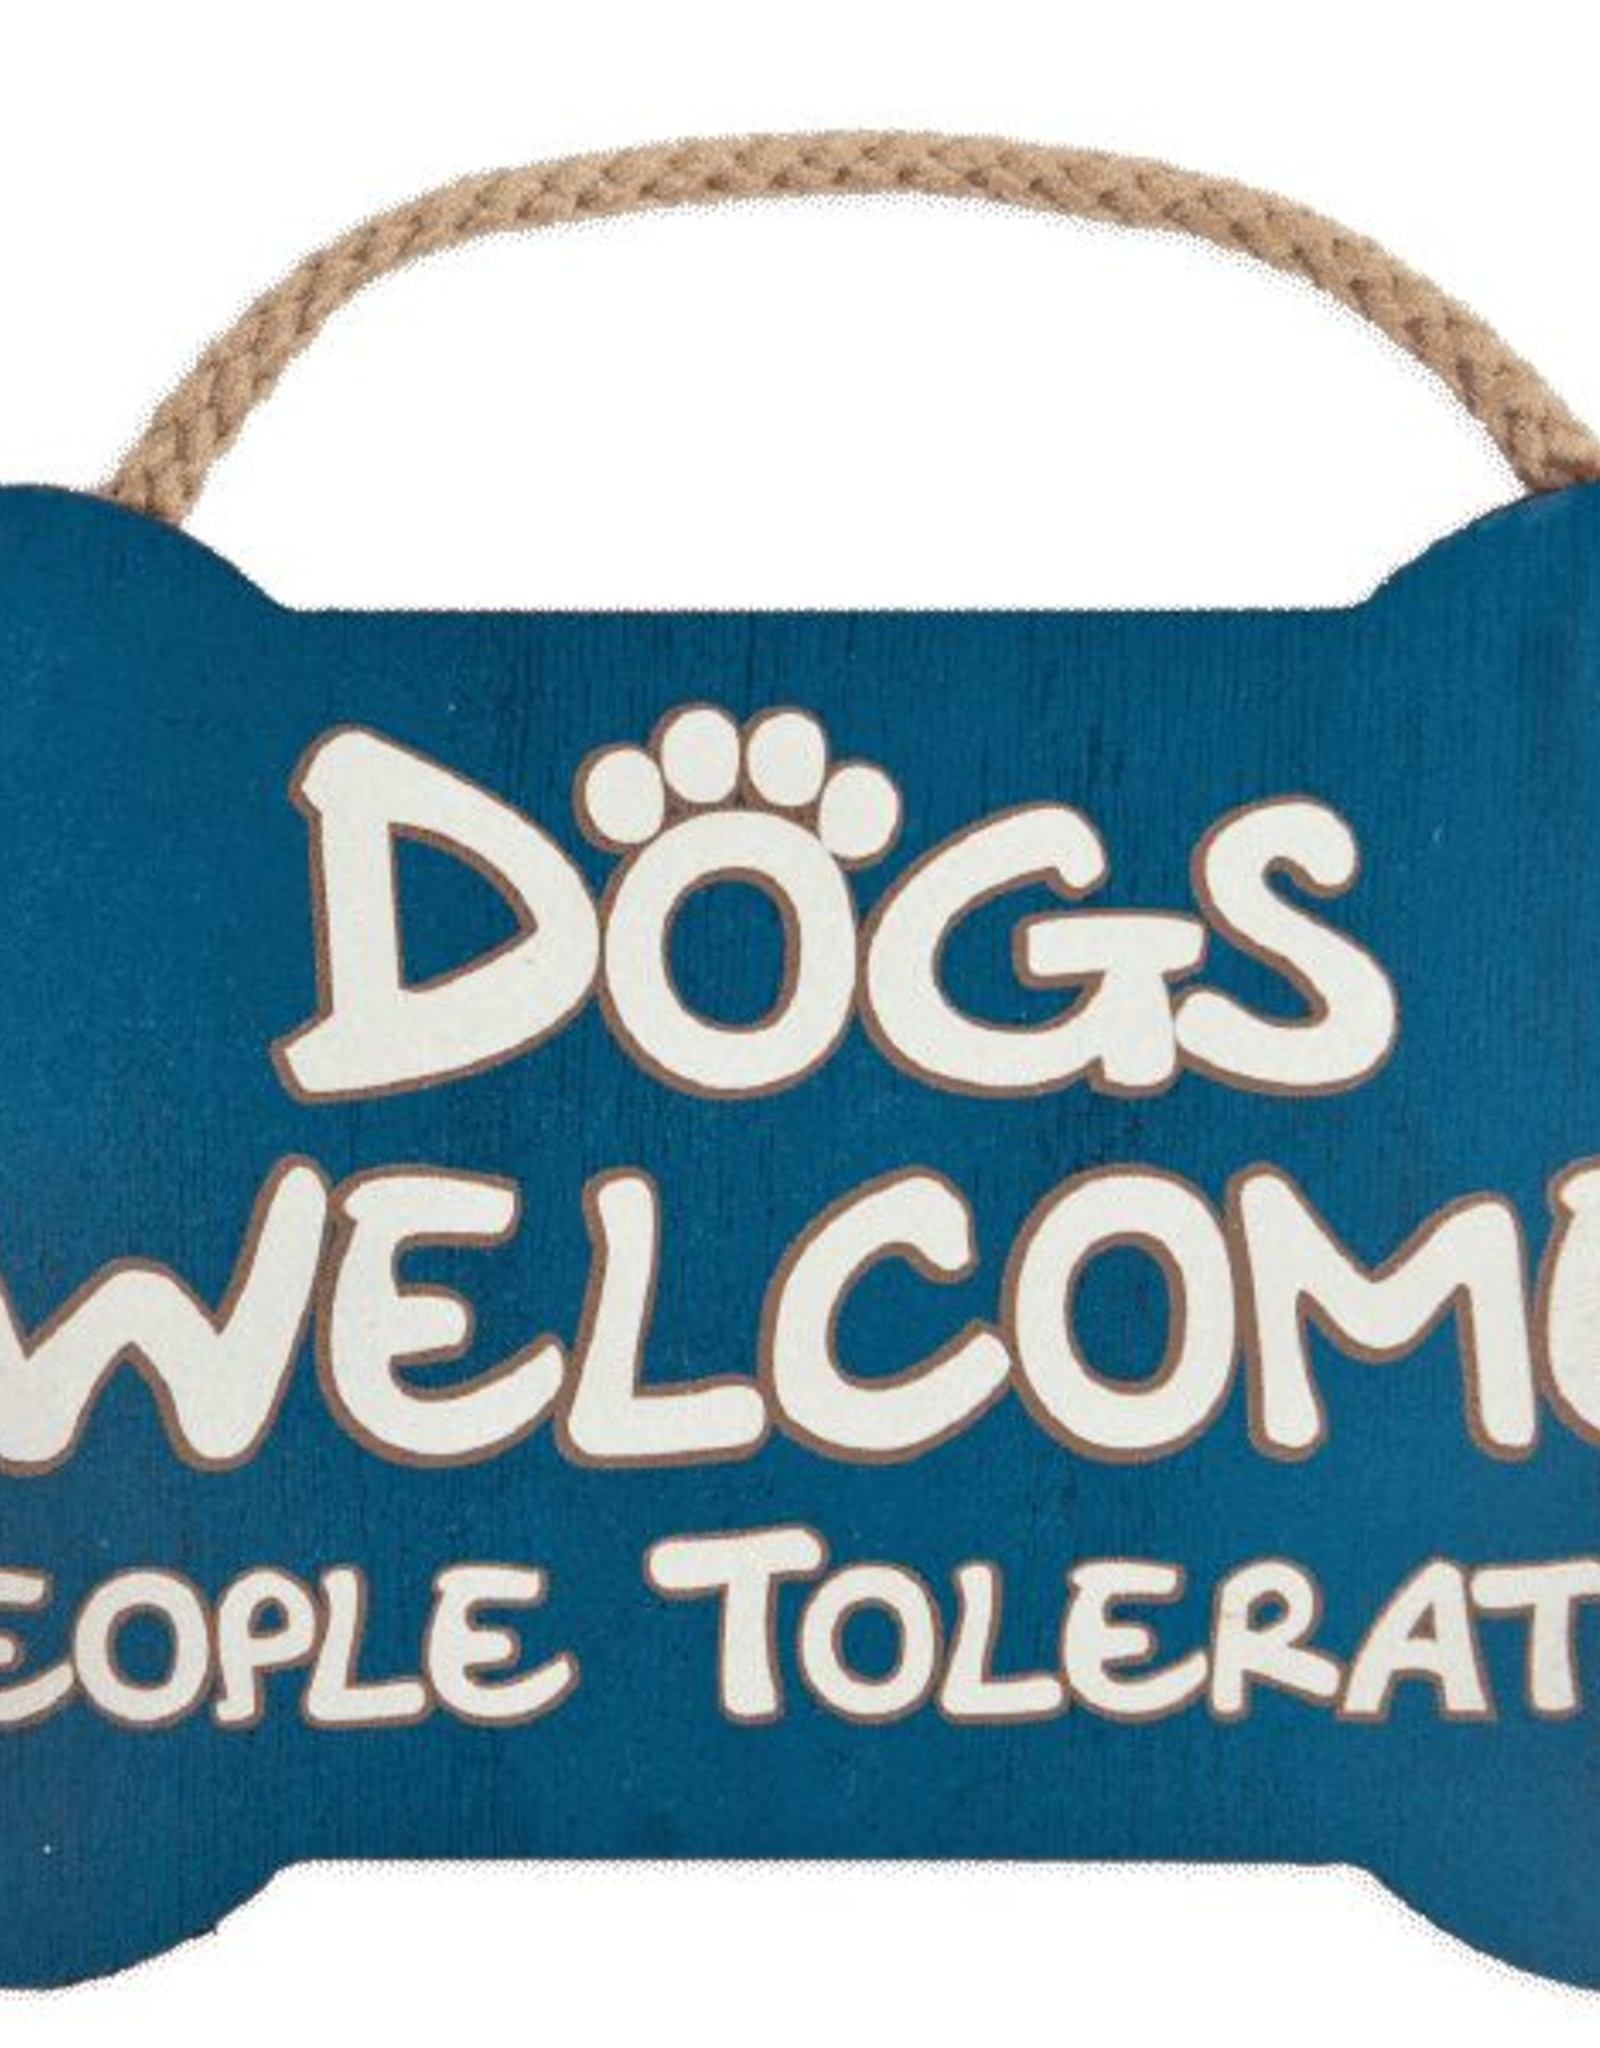 Dog Speak Dog Speak Hanging Sign - Dogs Welcome People Tolerated